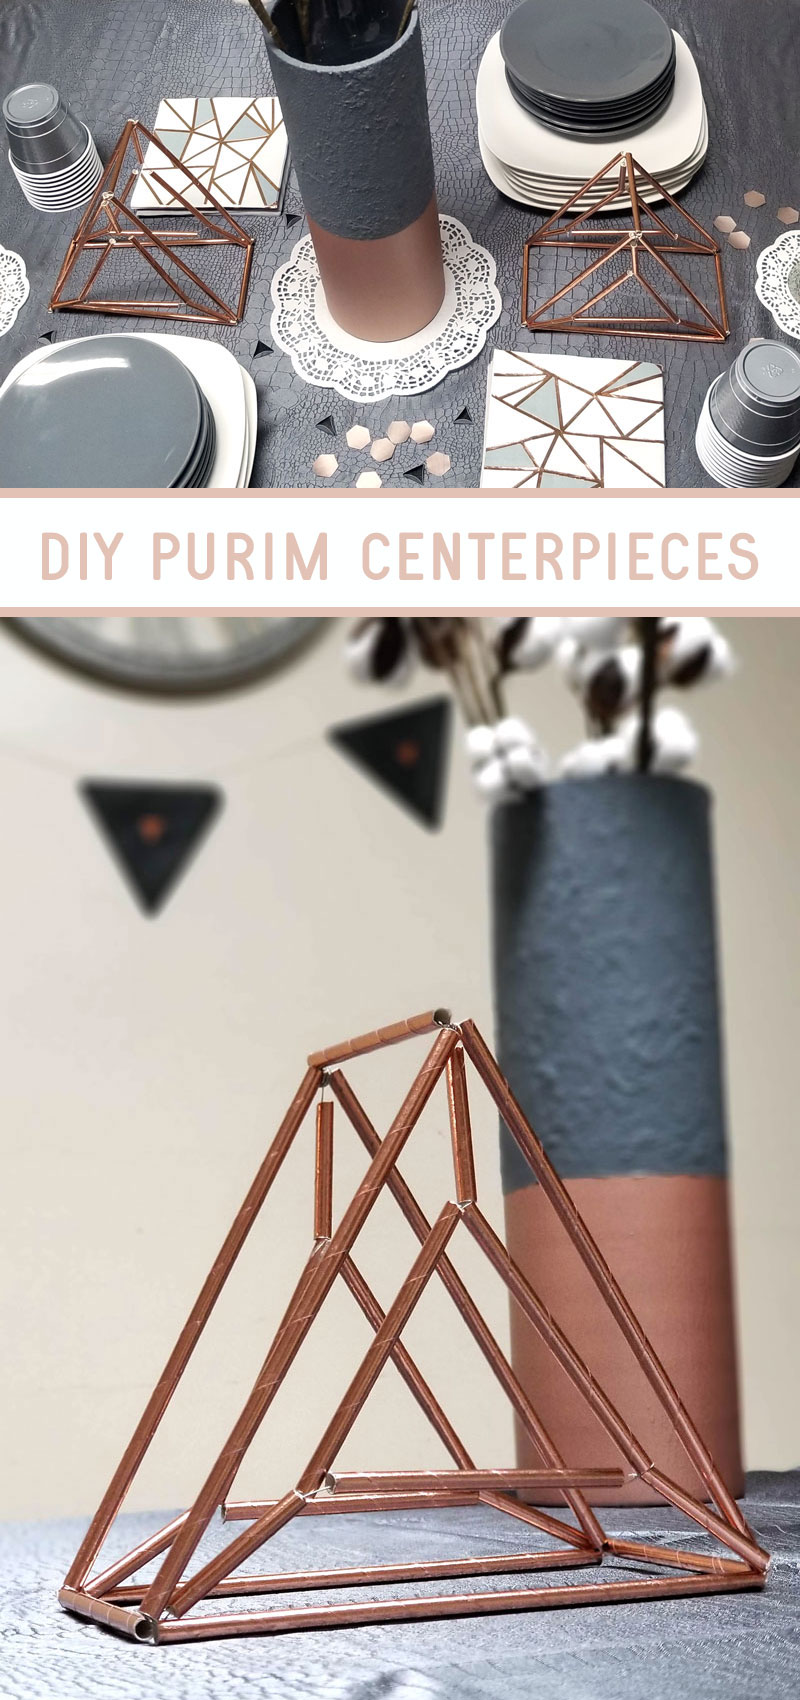 Gorgeous DIY Purim centerpieces make perfect Purim table decorations for your holiday feast! These Himmeli-inspired Hamanataschen sculptures are made from inexpensive paper straws.